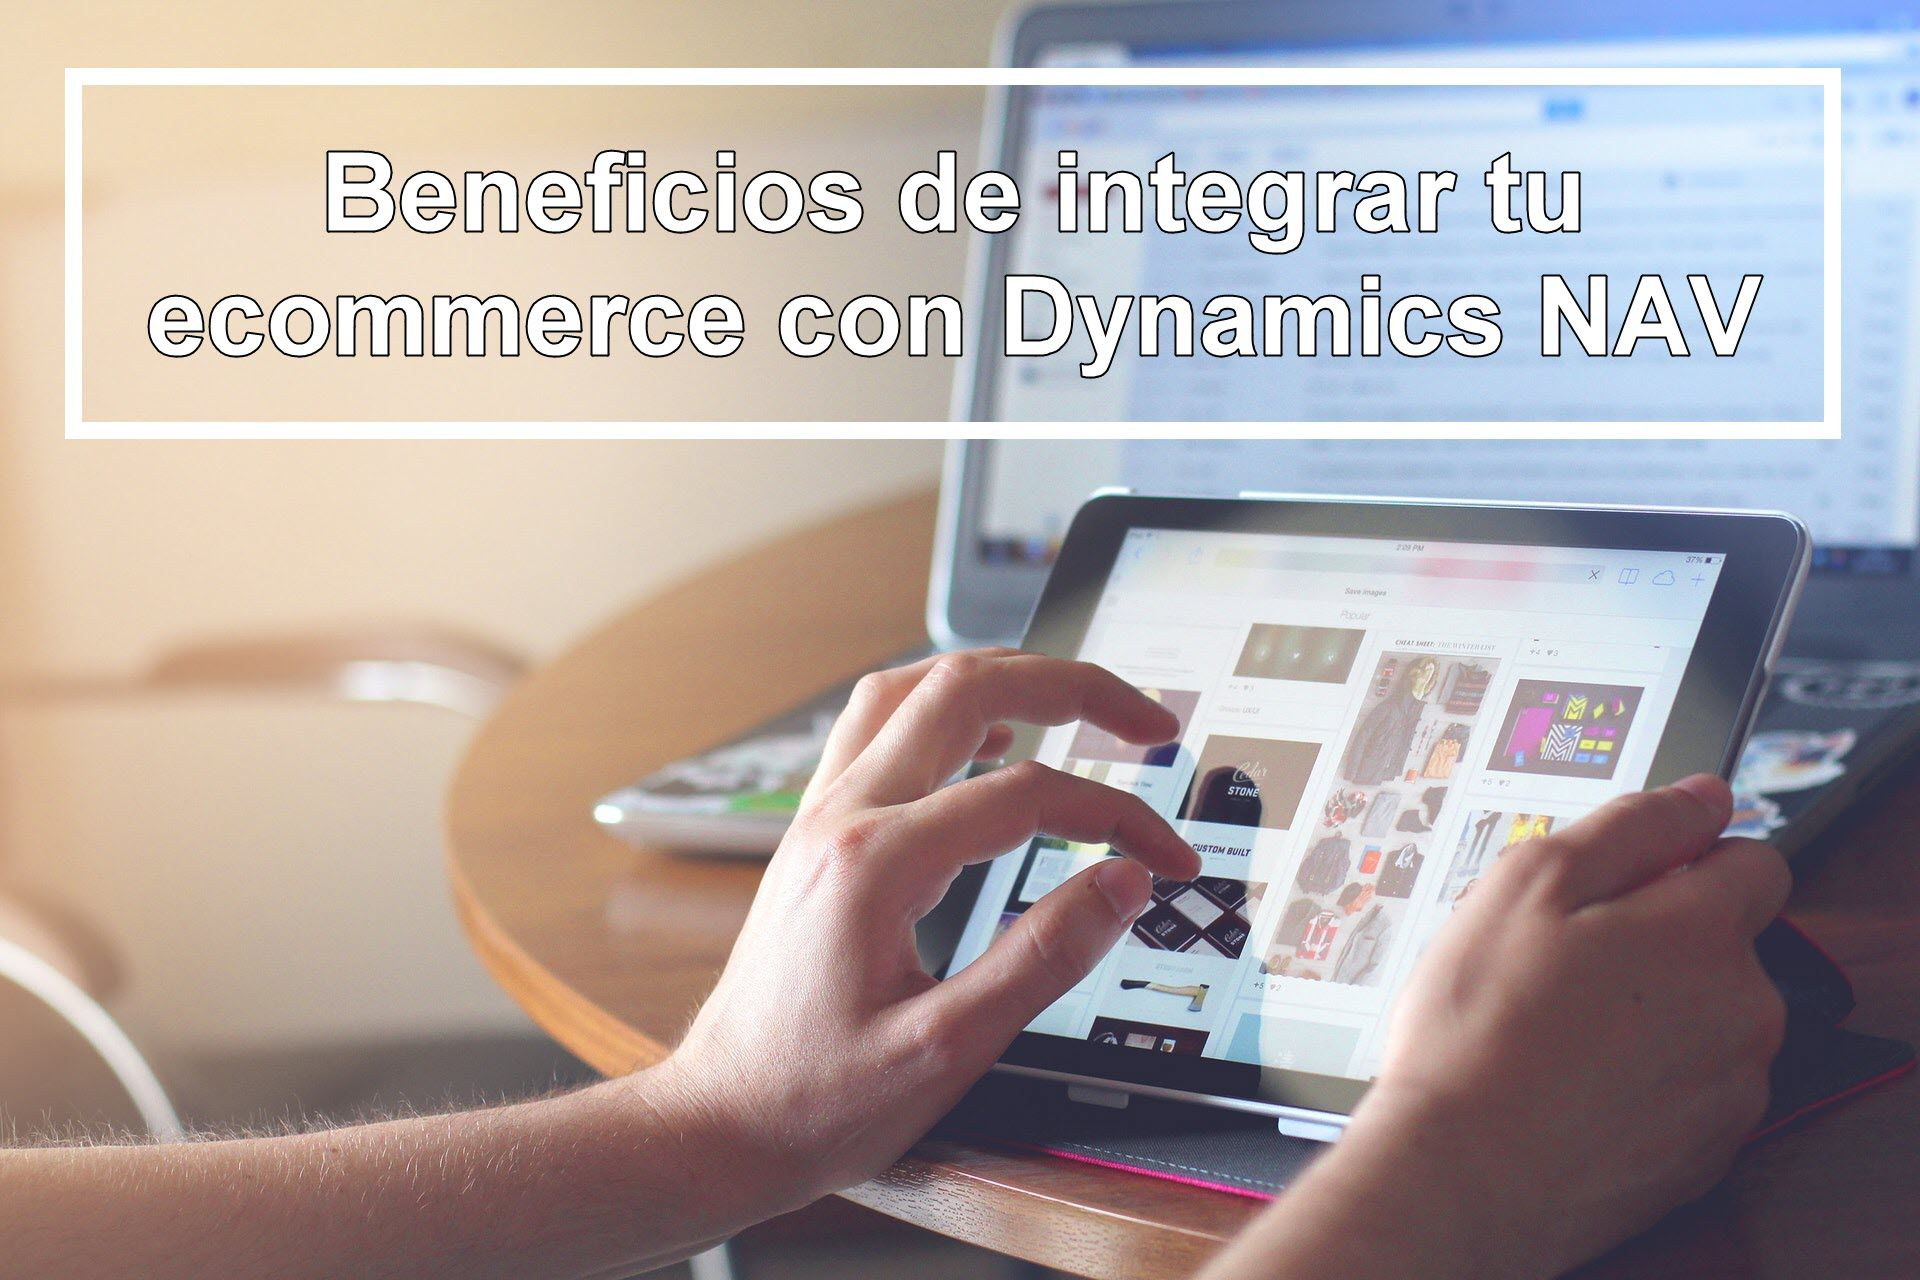 Beneficios integracion ecommerce dynamics nav navision